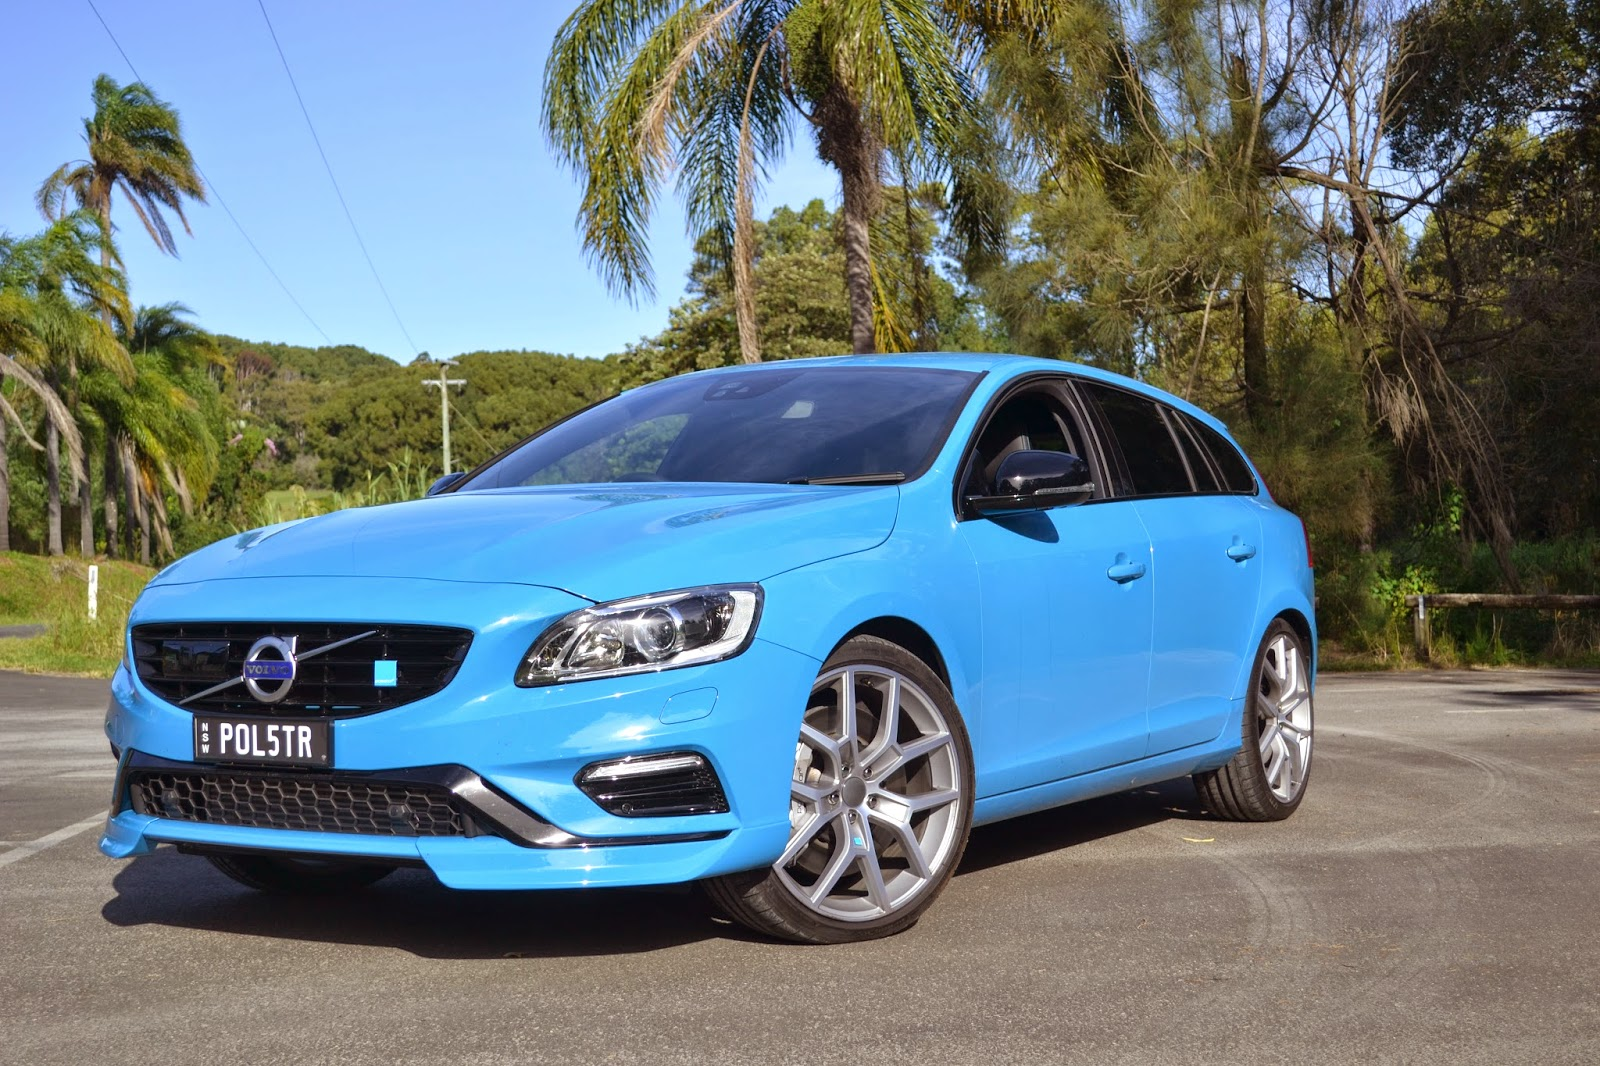 If you want to try and standout in the V60 Polestar, you have to go for blue